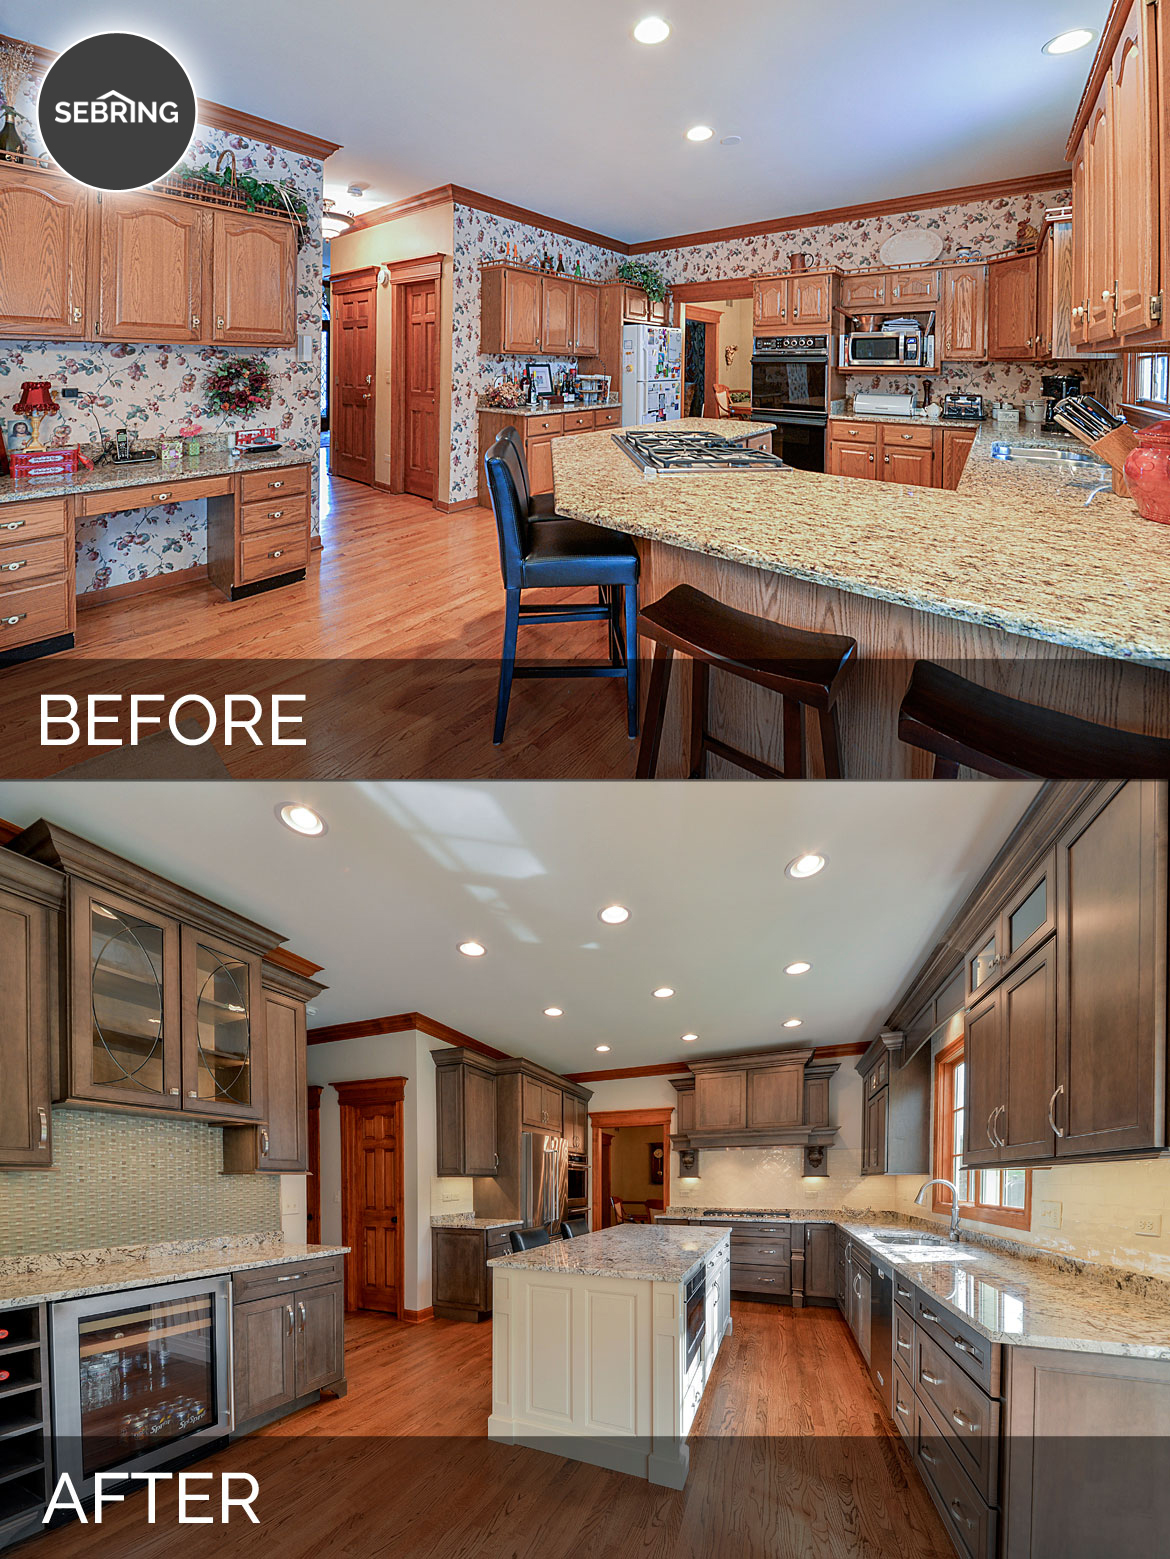 Scott karla 39 s kitchen before after pictures home for Kitchen remodel before after